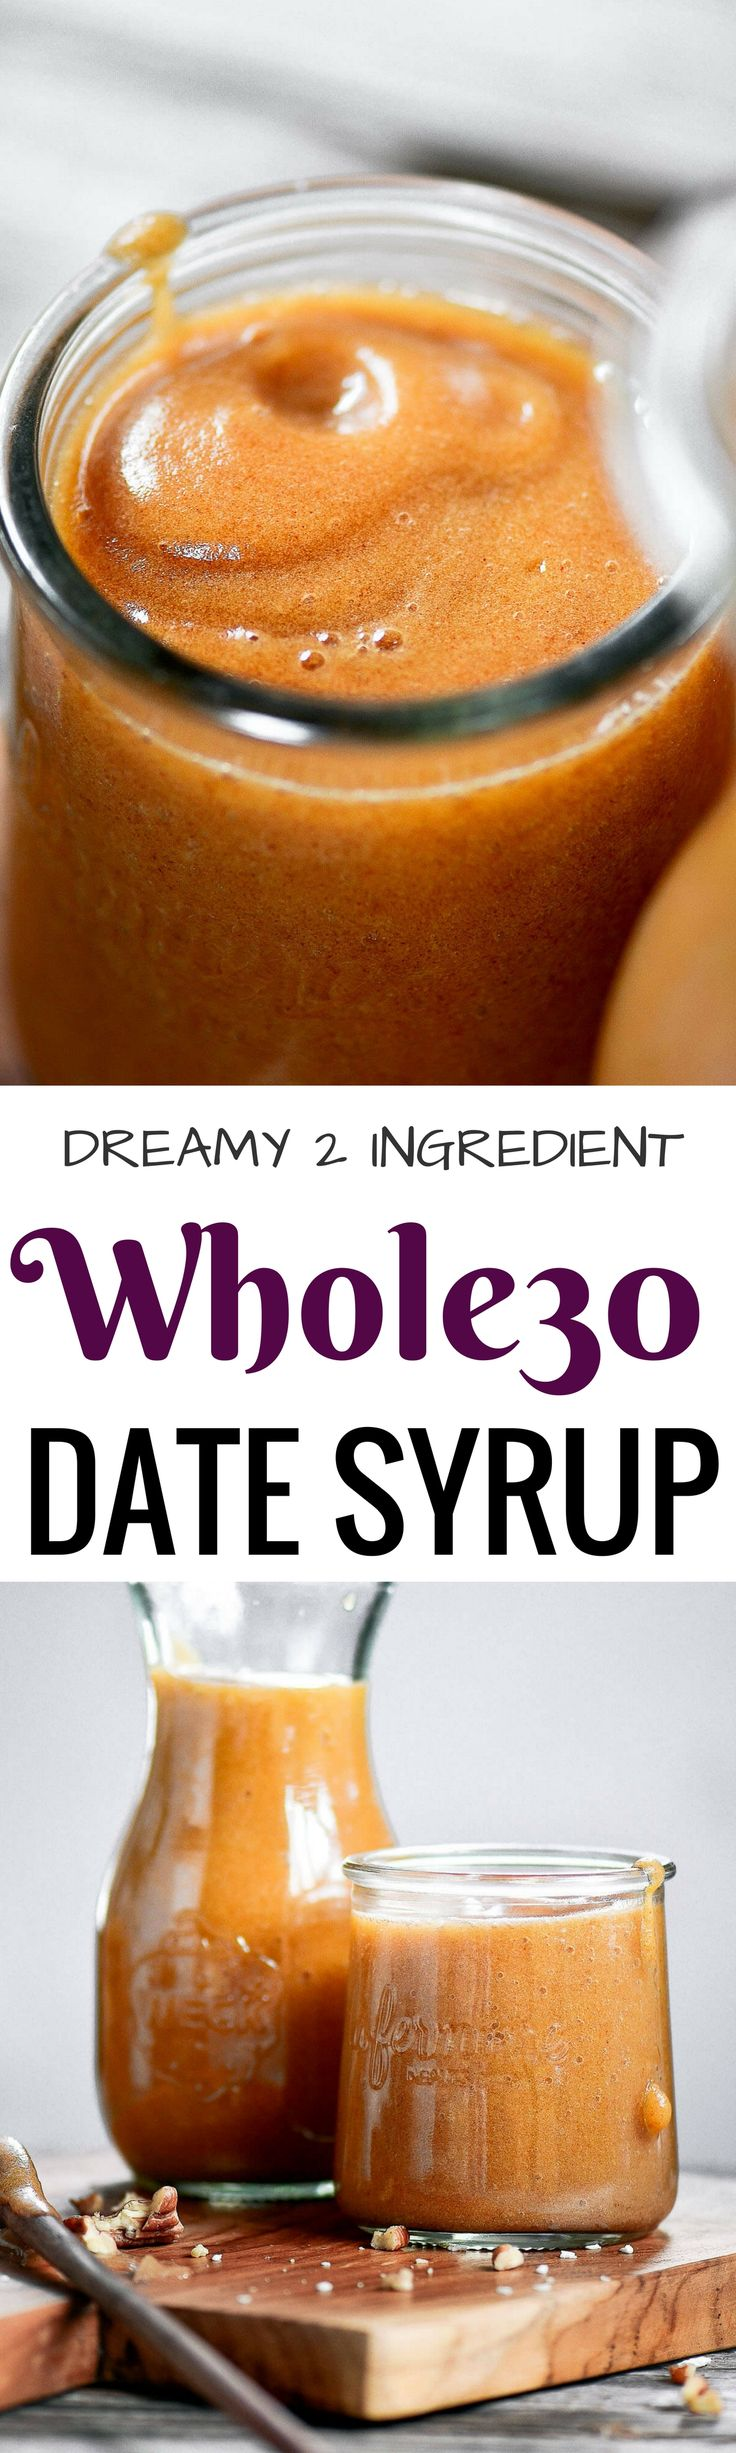 Dreamy 2 Ingredient Whole30 Date Syrup   Paleo Gluten Free Eats